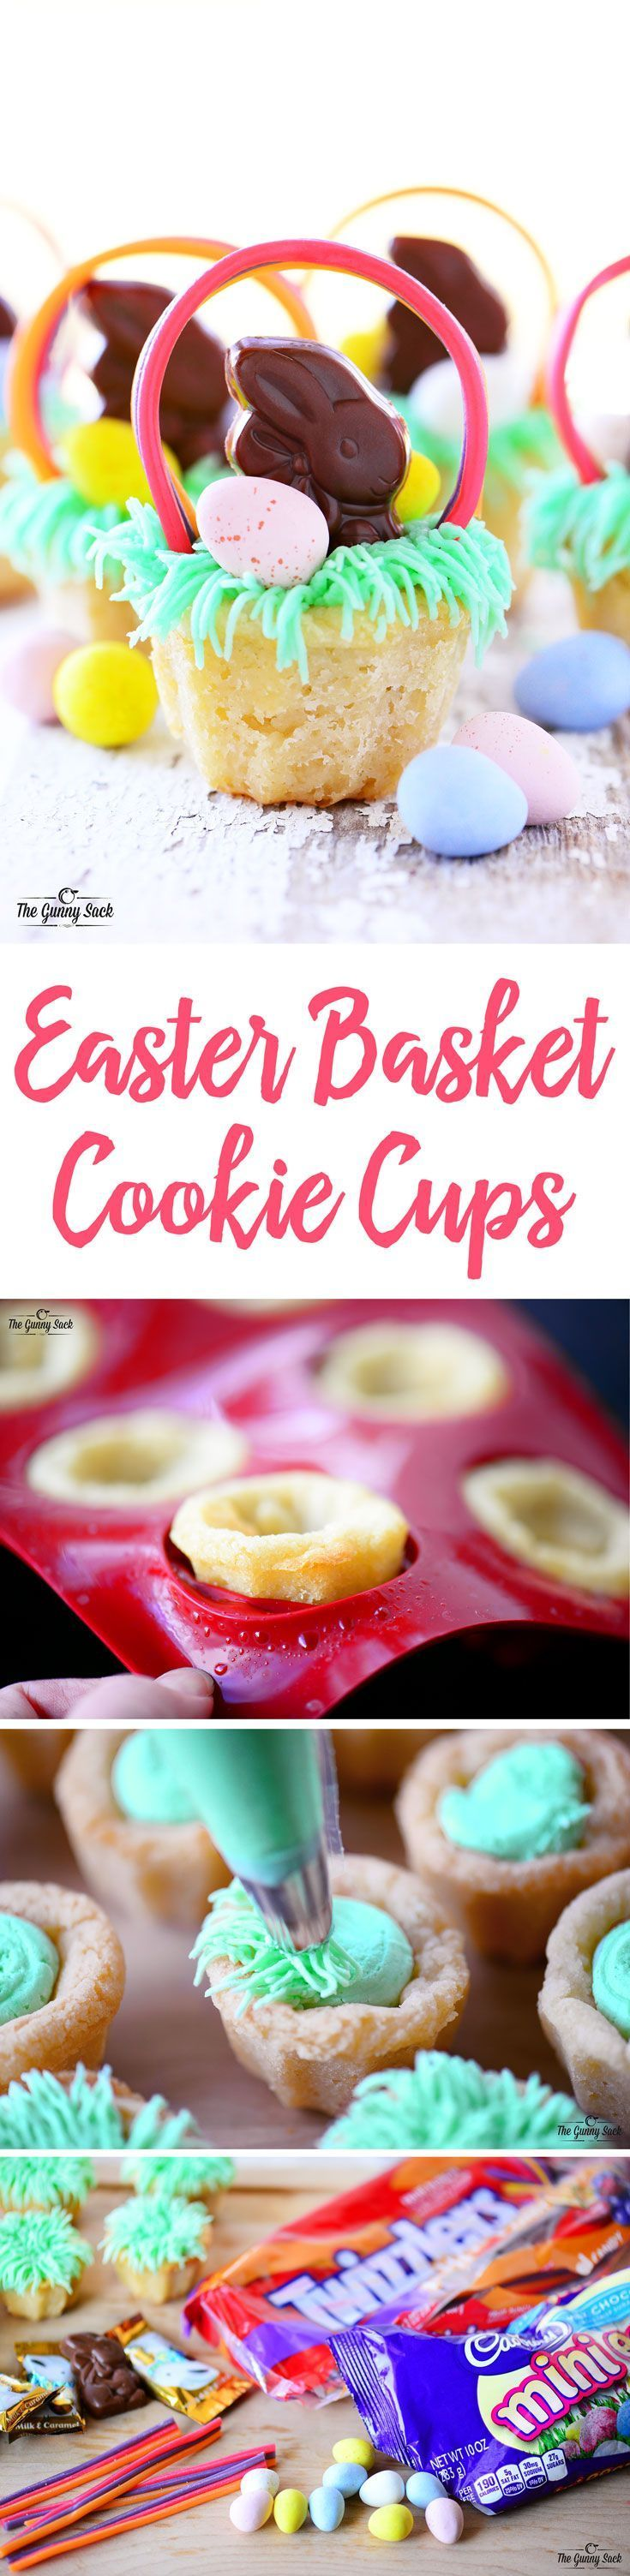 These adorable easter basket cookie cups are almost too fun to eat these adorable easter basket cookie cups are almost too fun to eat an easter dessert negle Choice Image